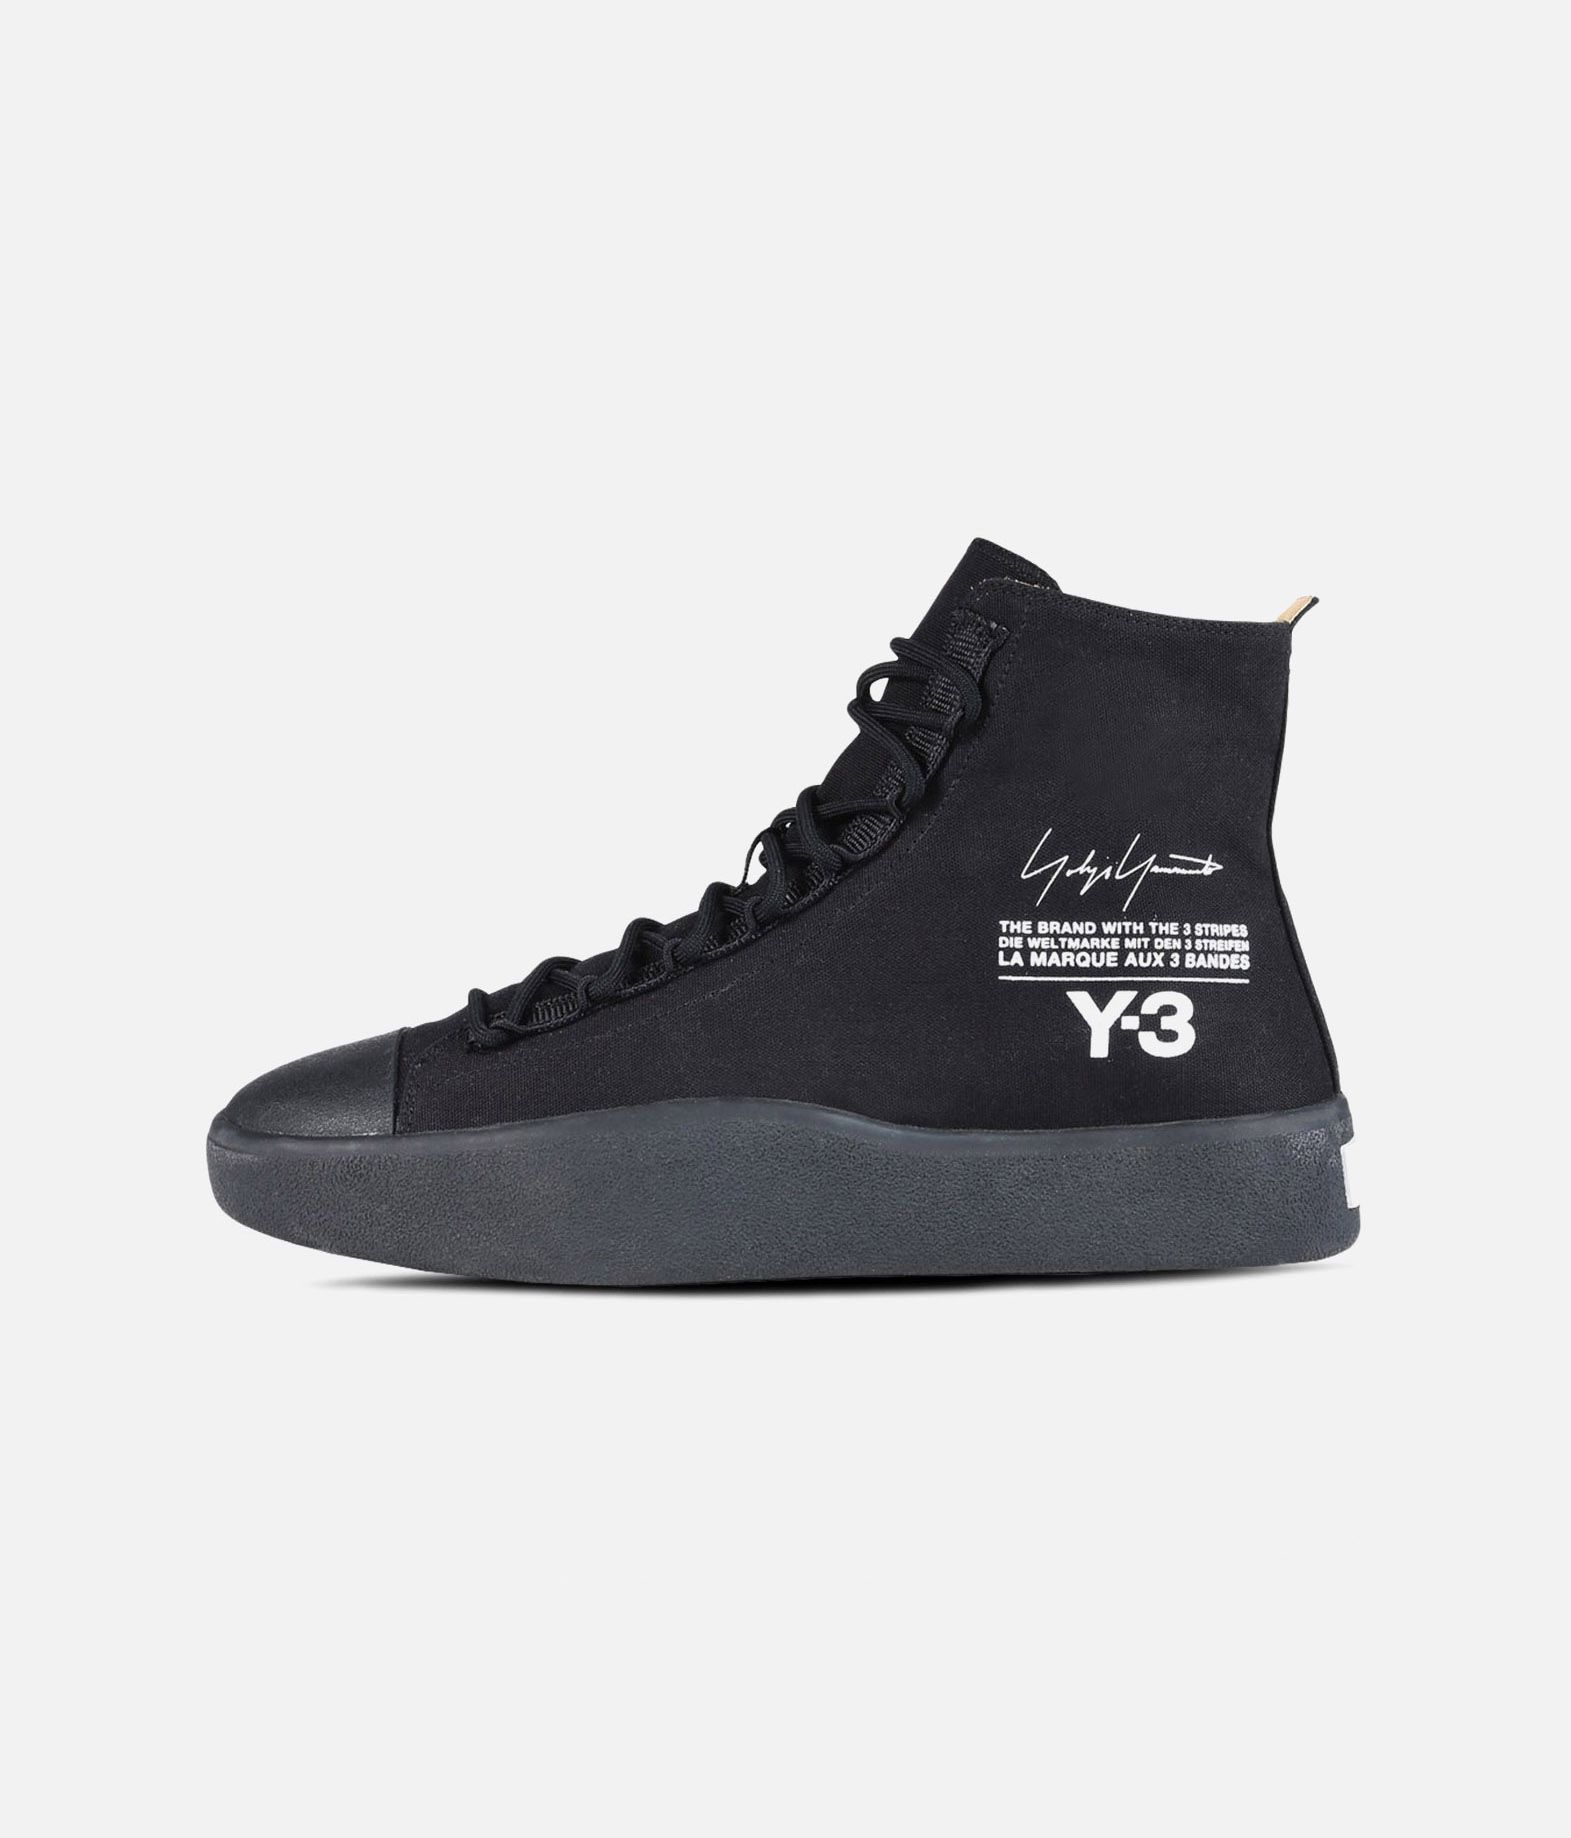 c62538ee1 ... Y-3 Y-3 BASHYO High-top sneakers E f ...